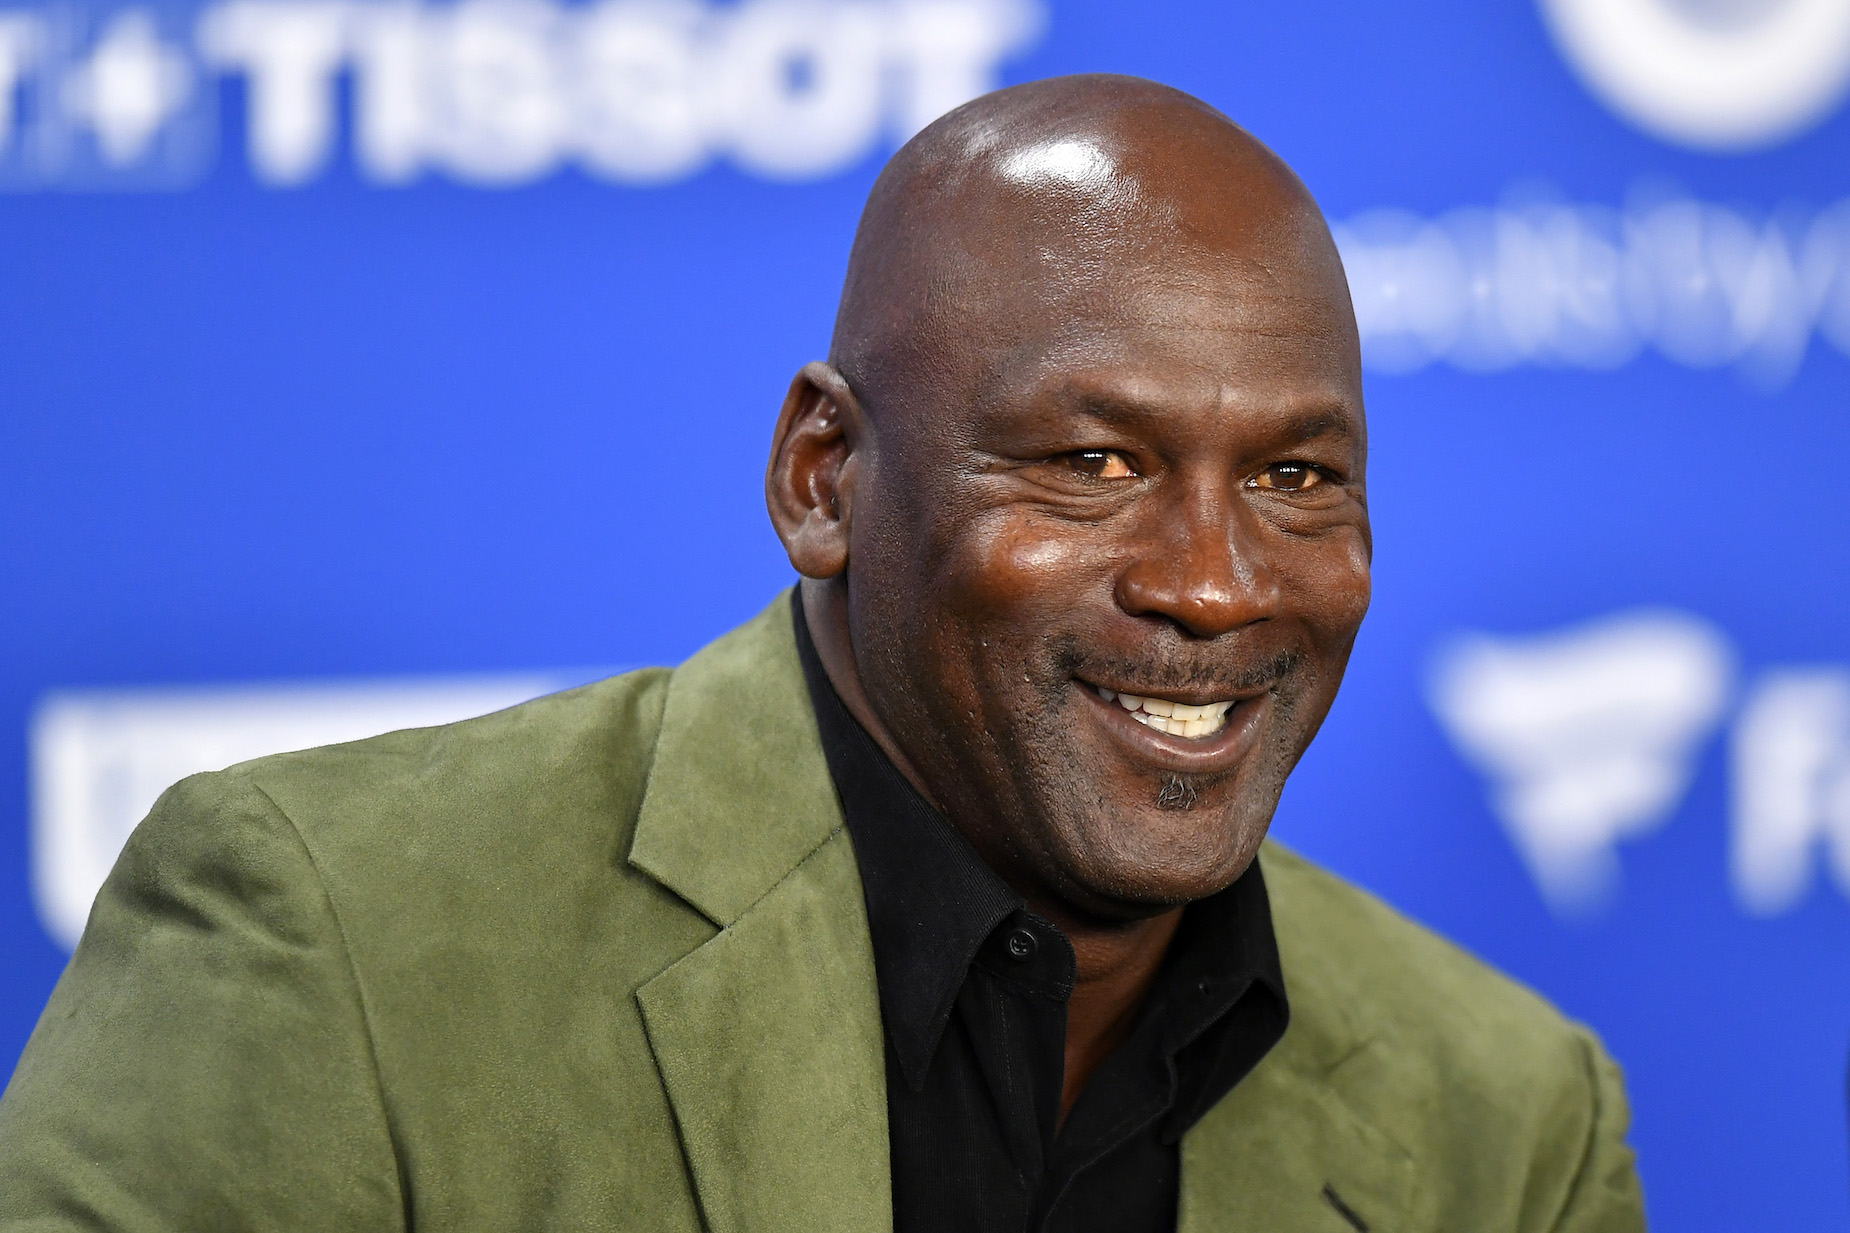 Michael Jordan's $7 million gift has become extra important due to the COVID-19 pandemic.